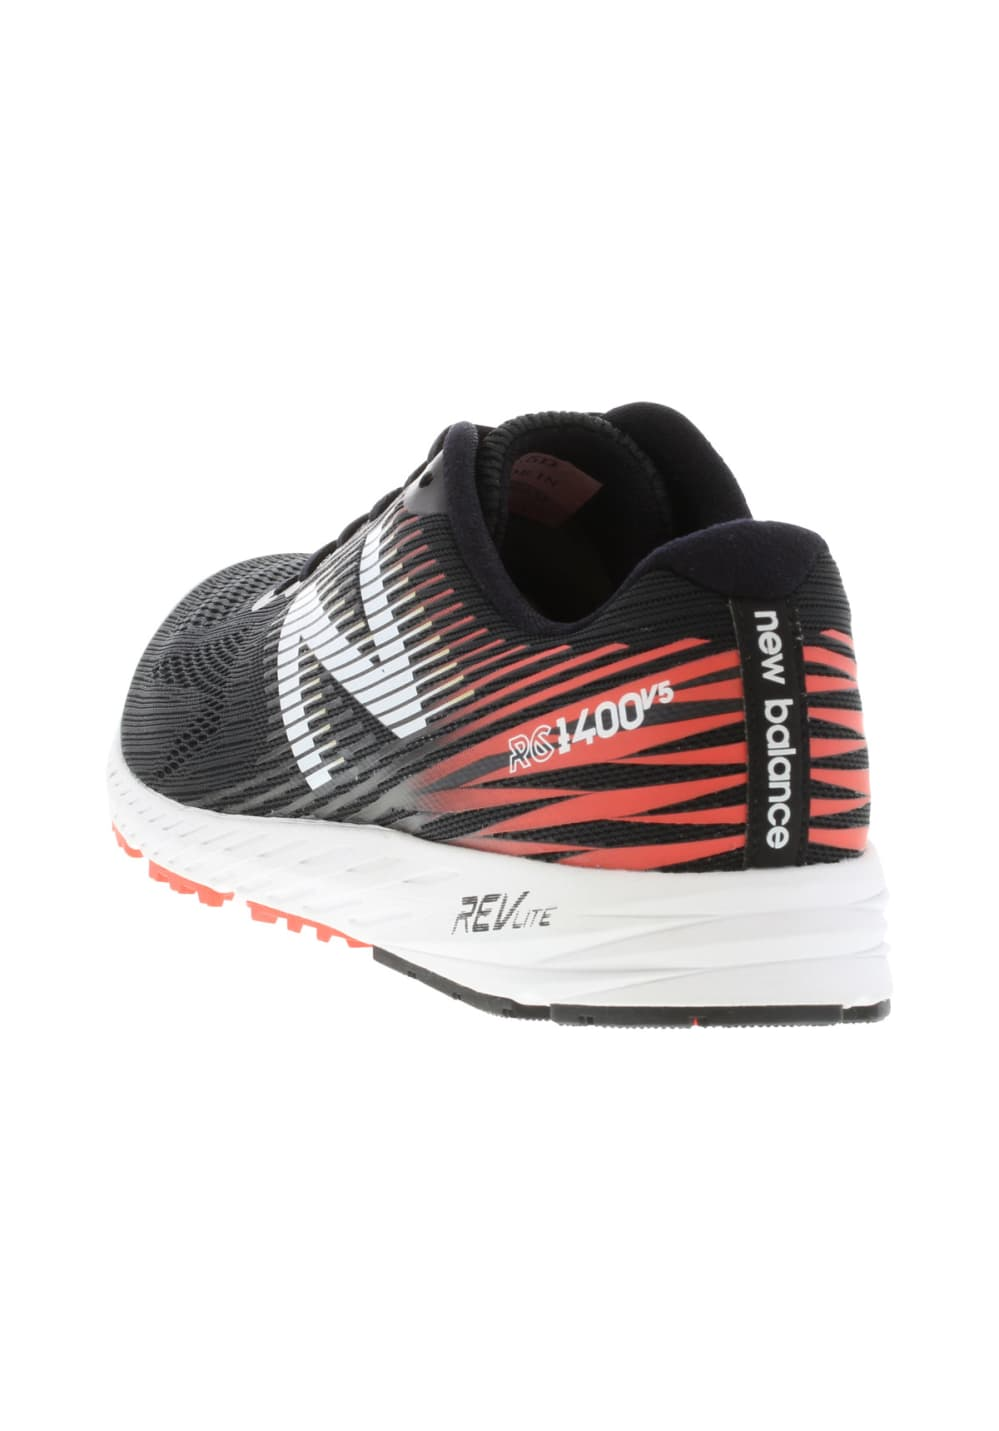 new products 70696 a4fd0 New Balance 1400V5 - Running shoes for Men - Black